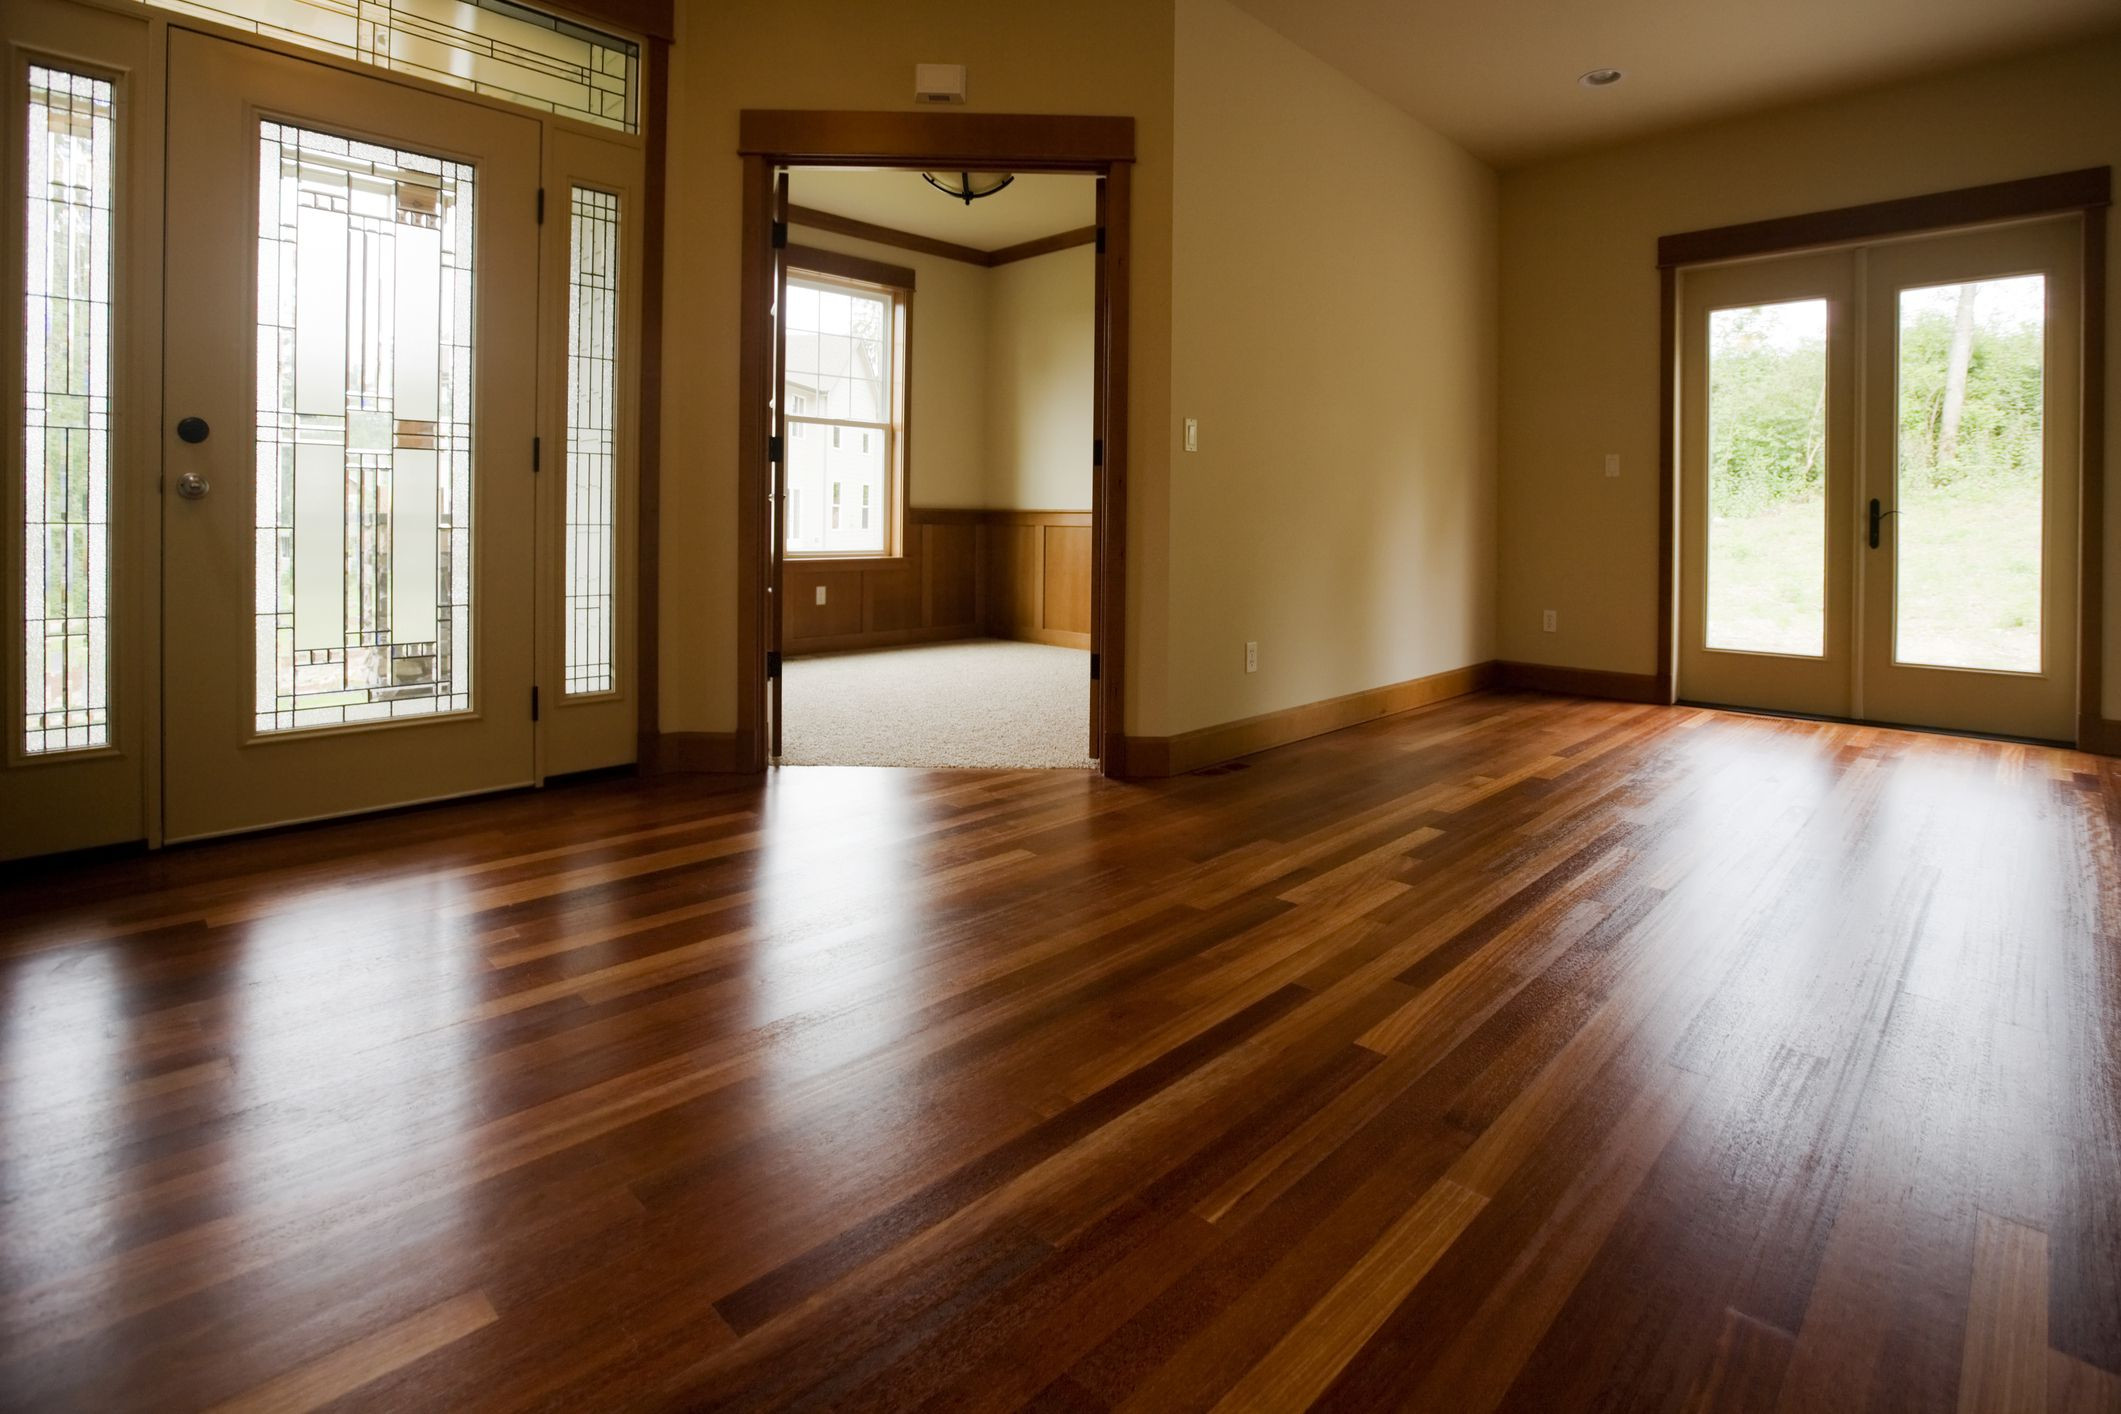 bruce maple hardwood flooring of types of hardwood flooring buyers guide throughout gettyimages 157332889 5886d8383df78c2ccd65d4e1